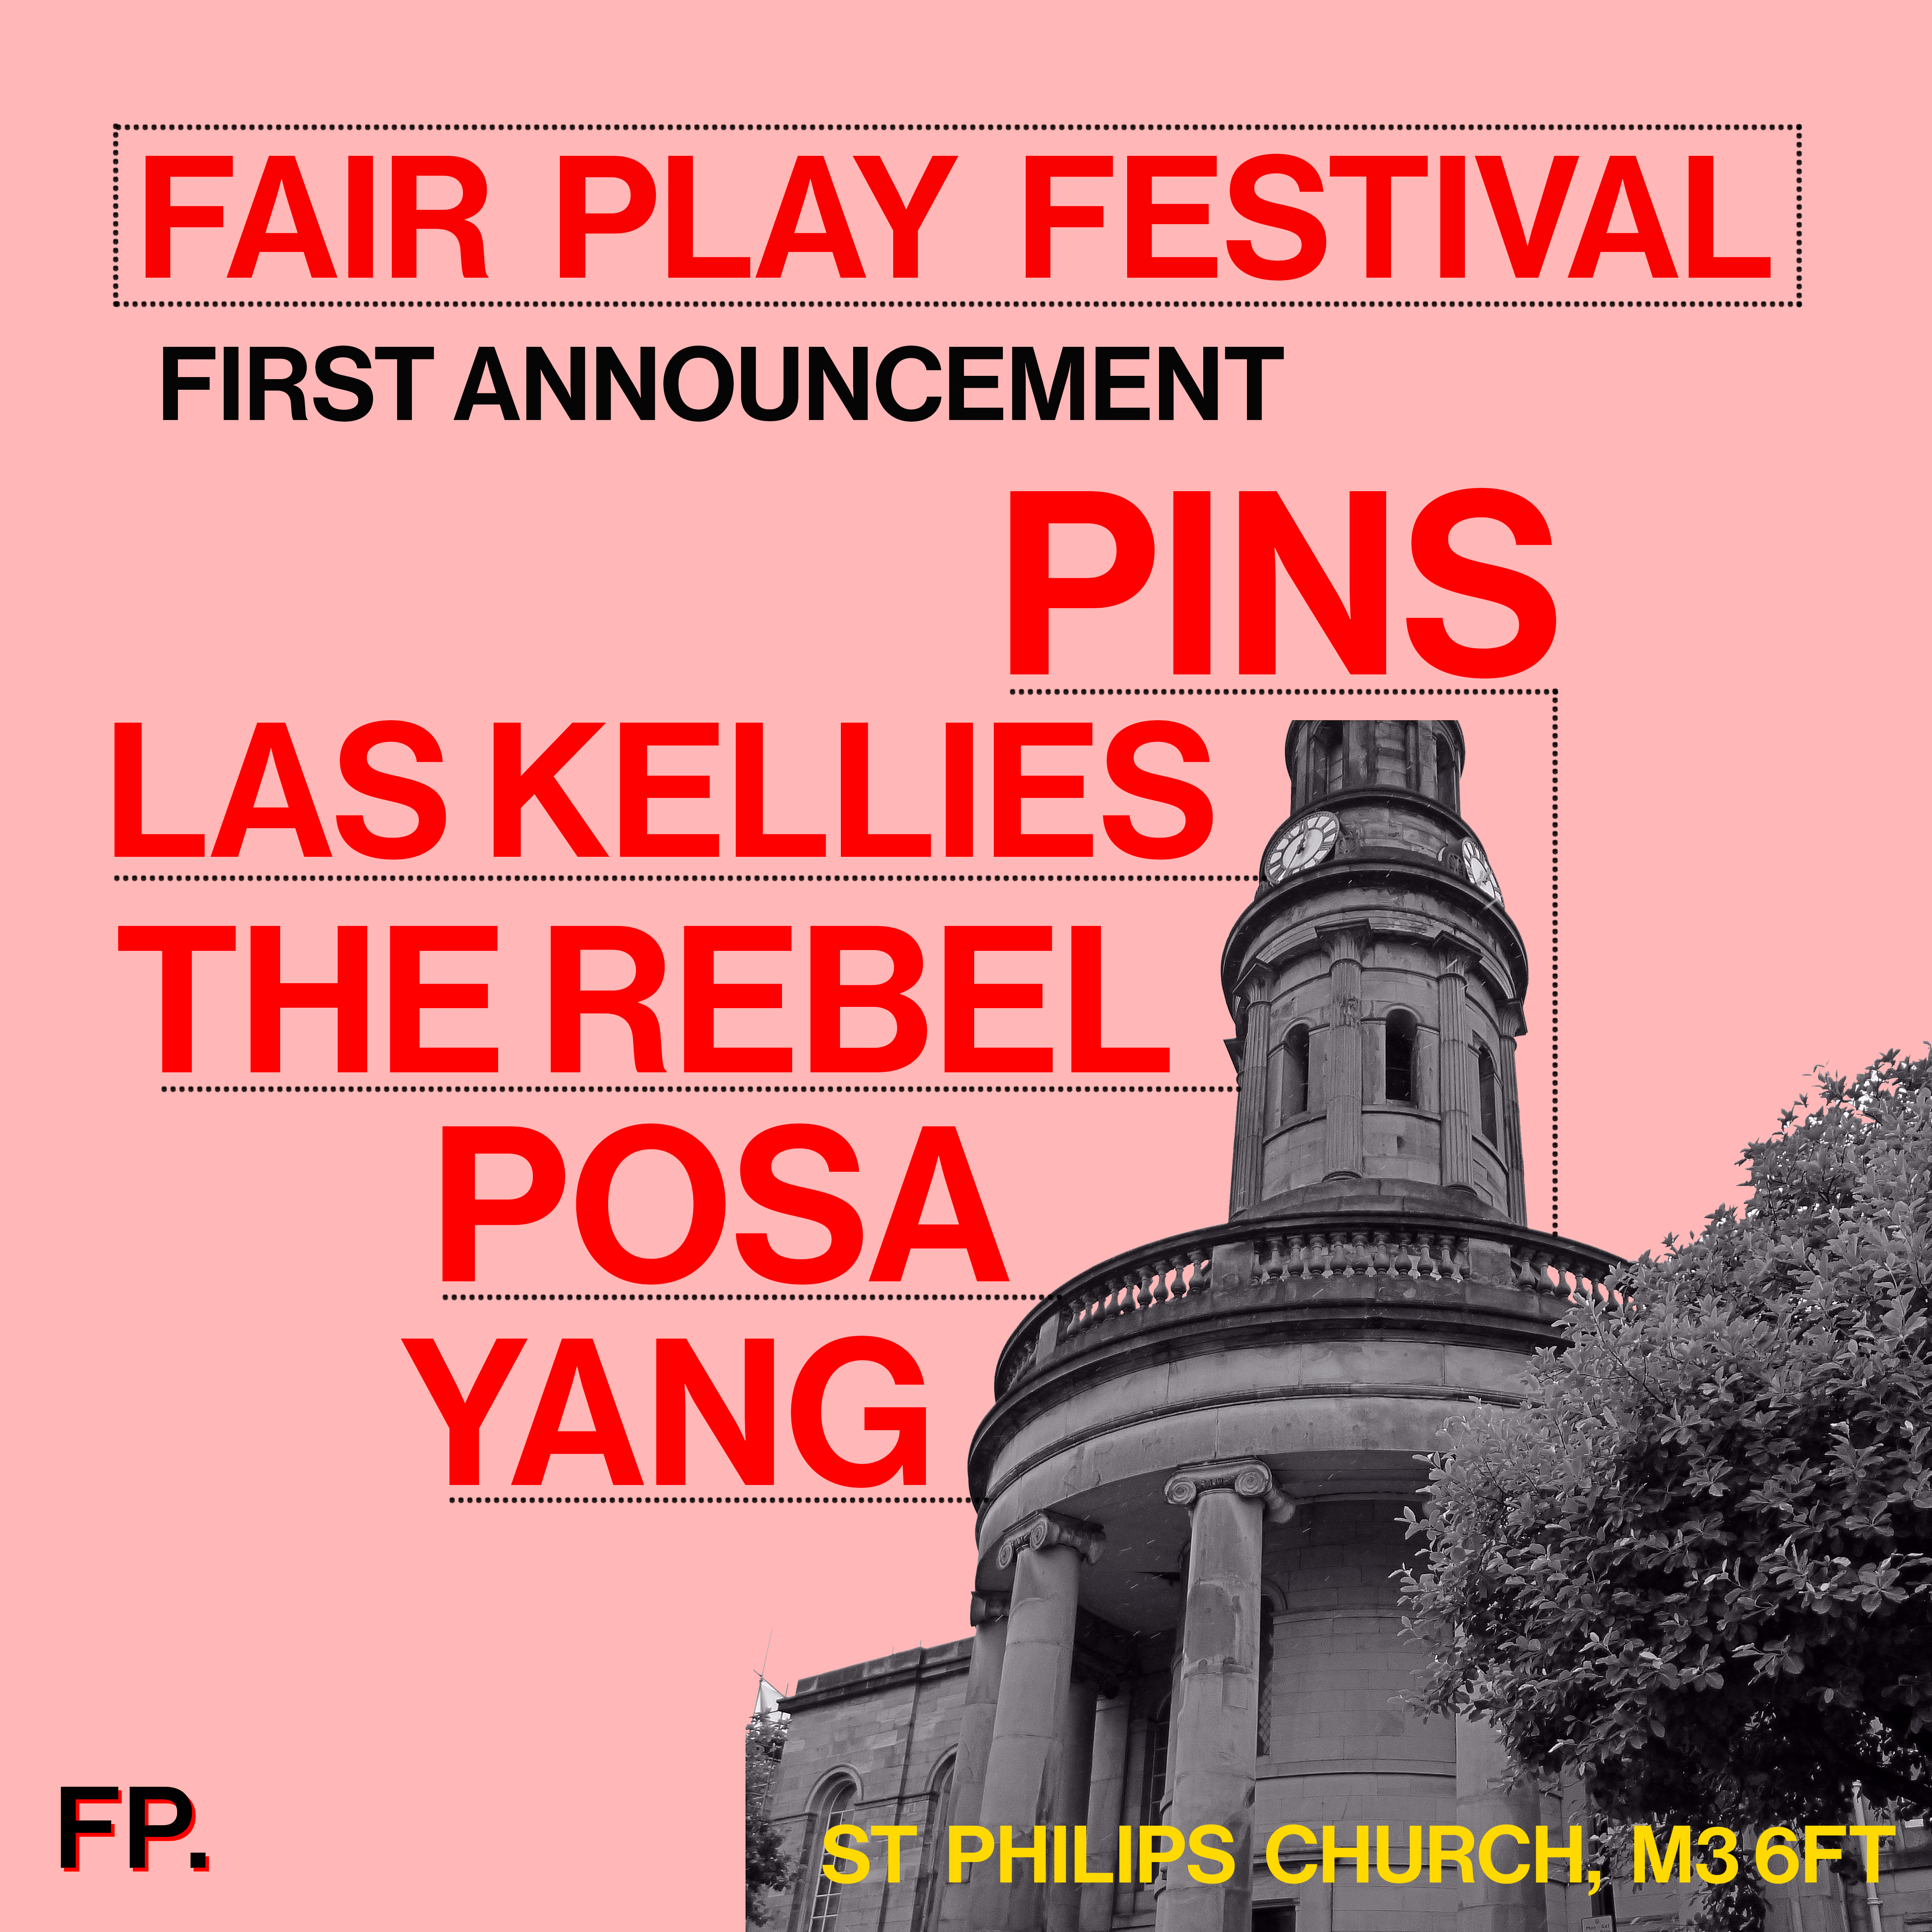 Faith Vern will be leading the band to Fair Play Festival in March 2020